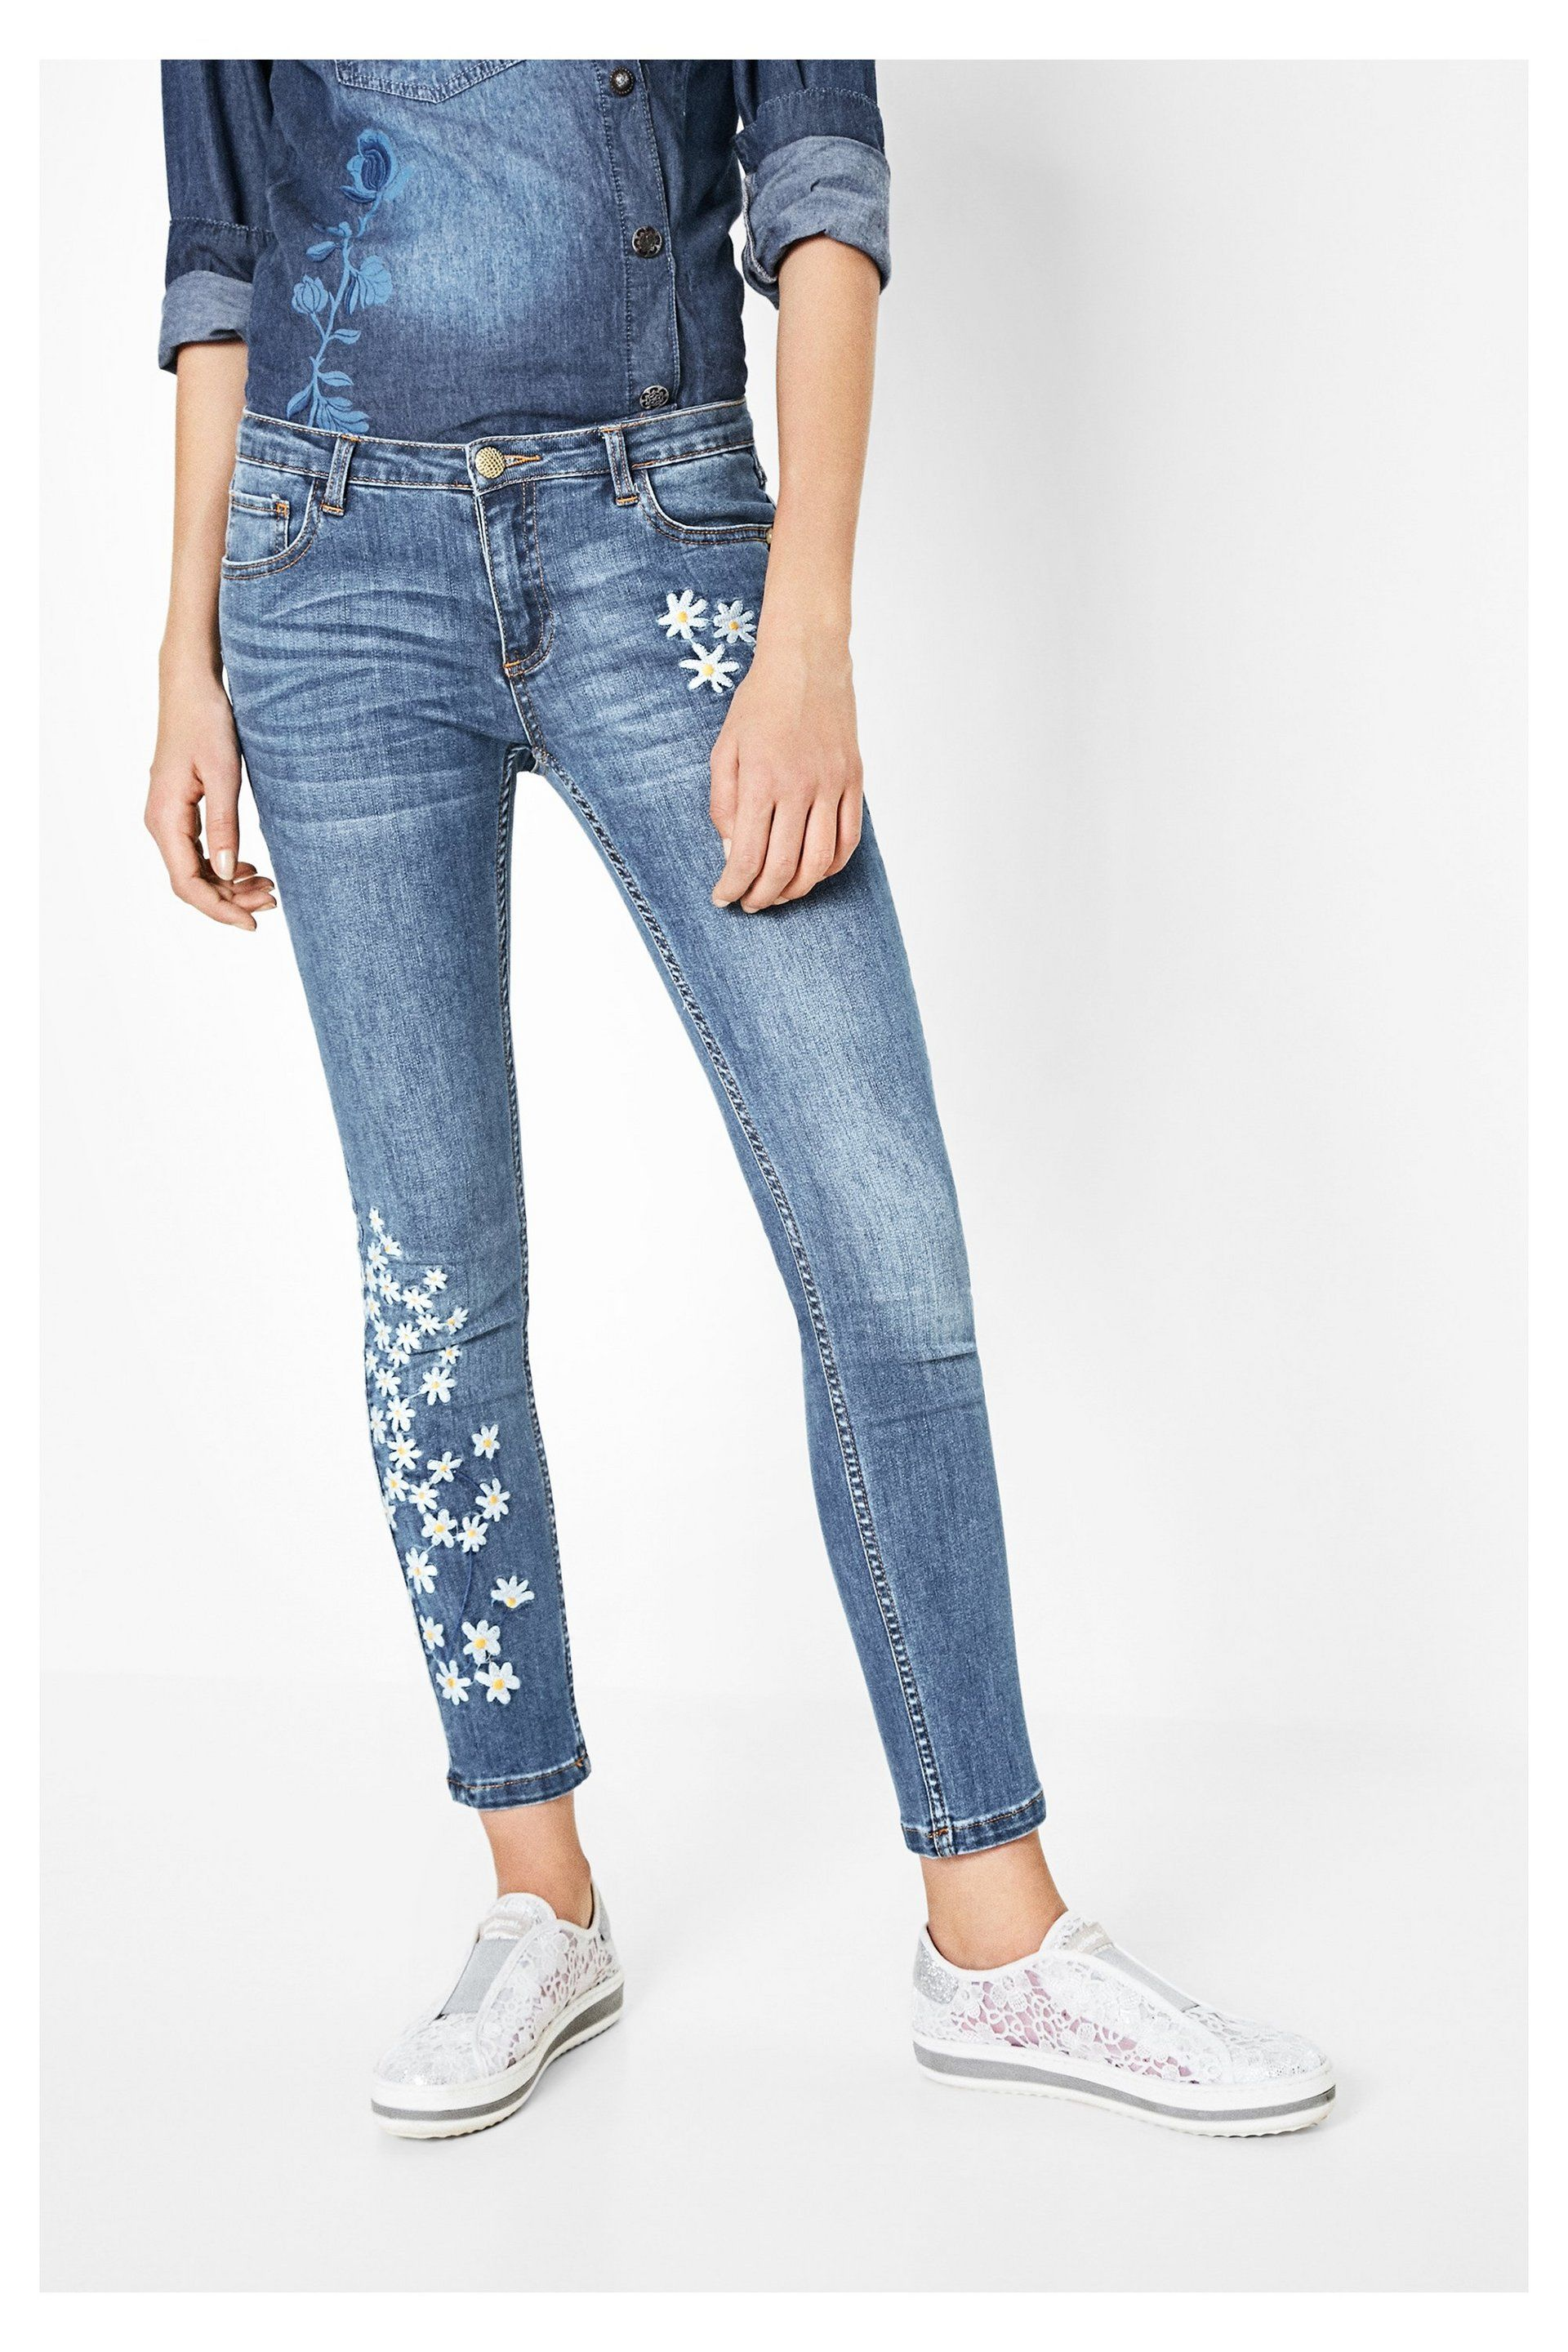 Slim Fit Jeans With Embroidered Details Jeans 3 Clothes